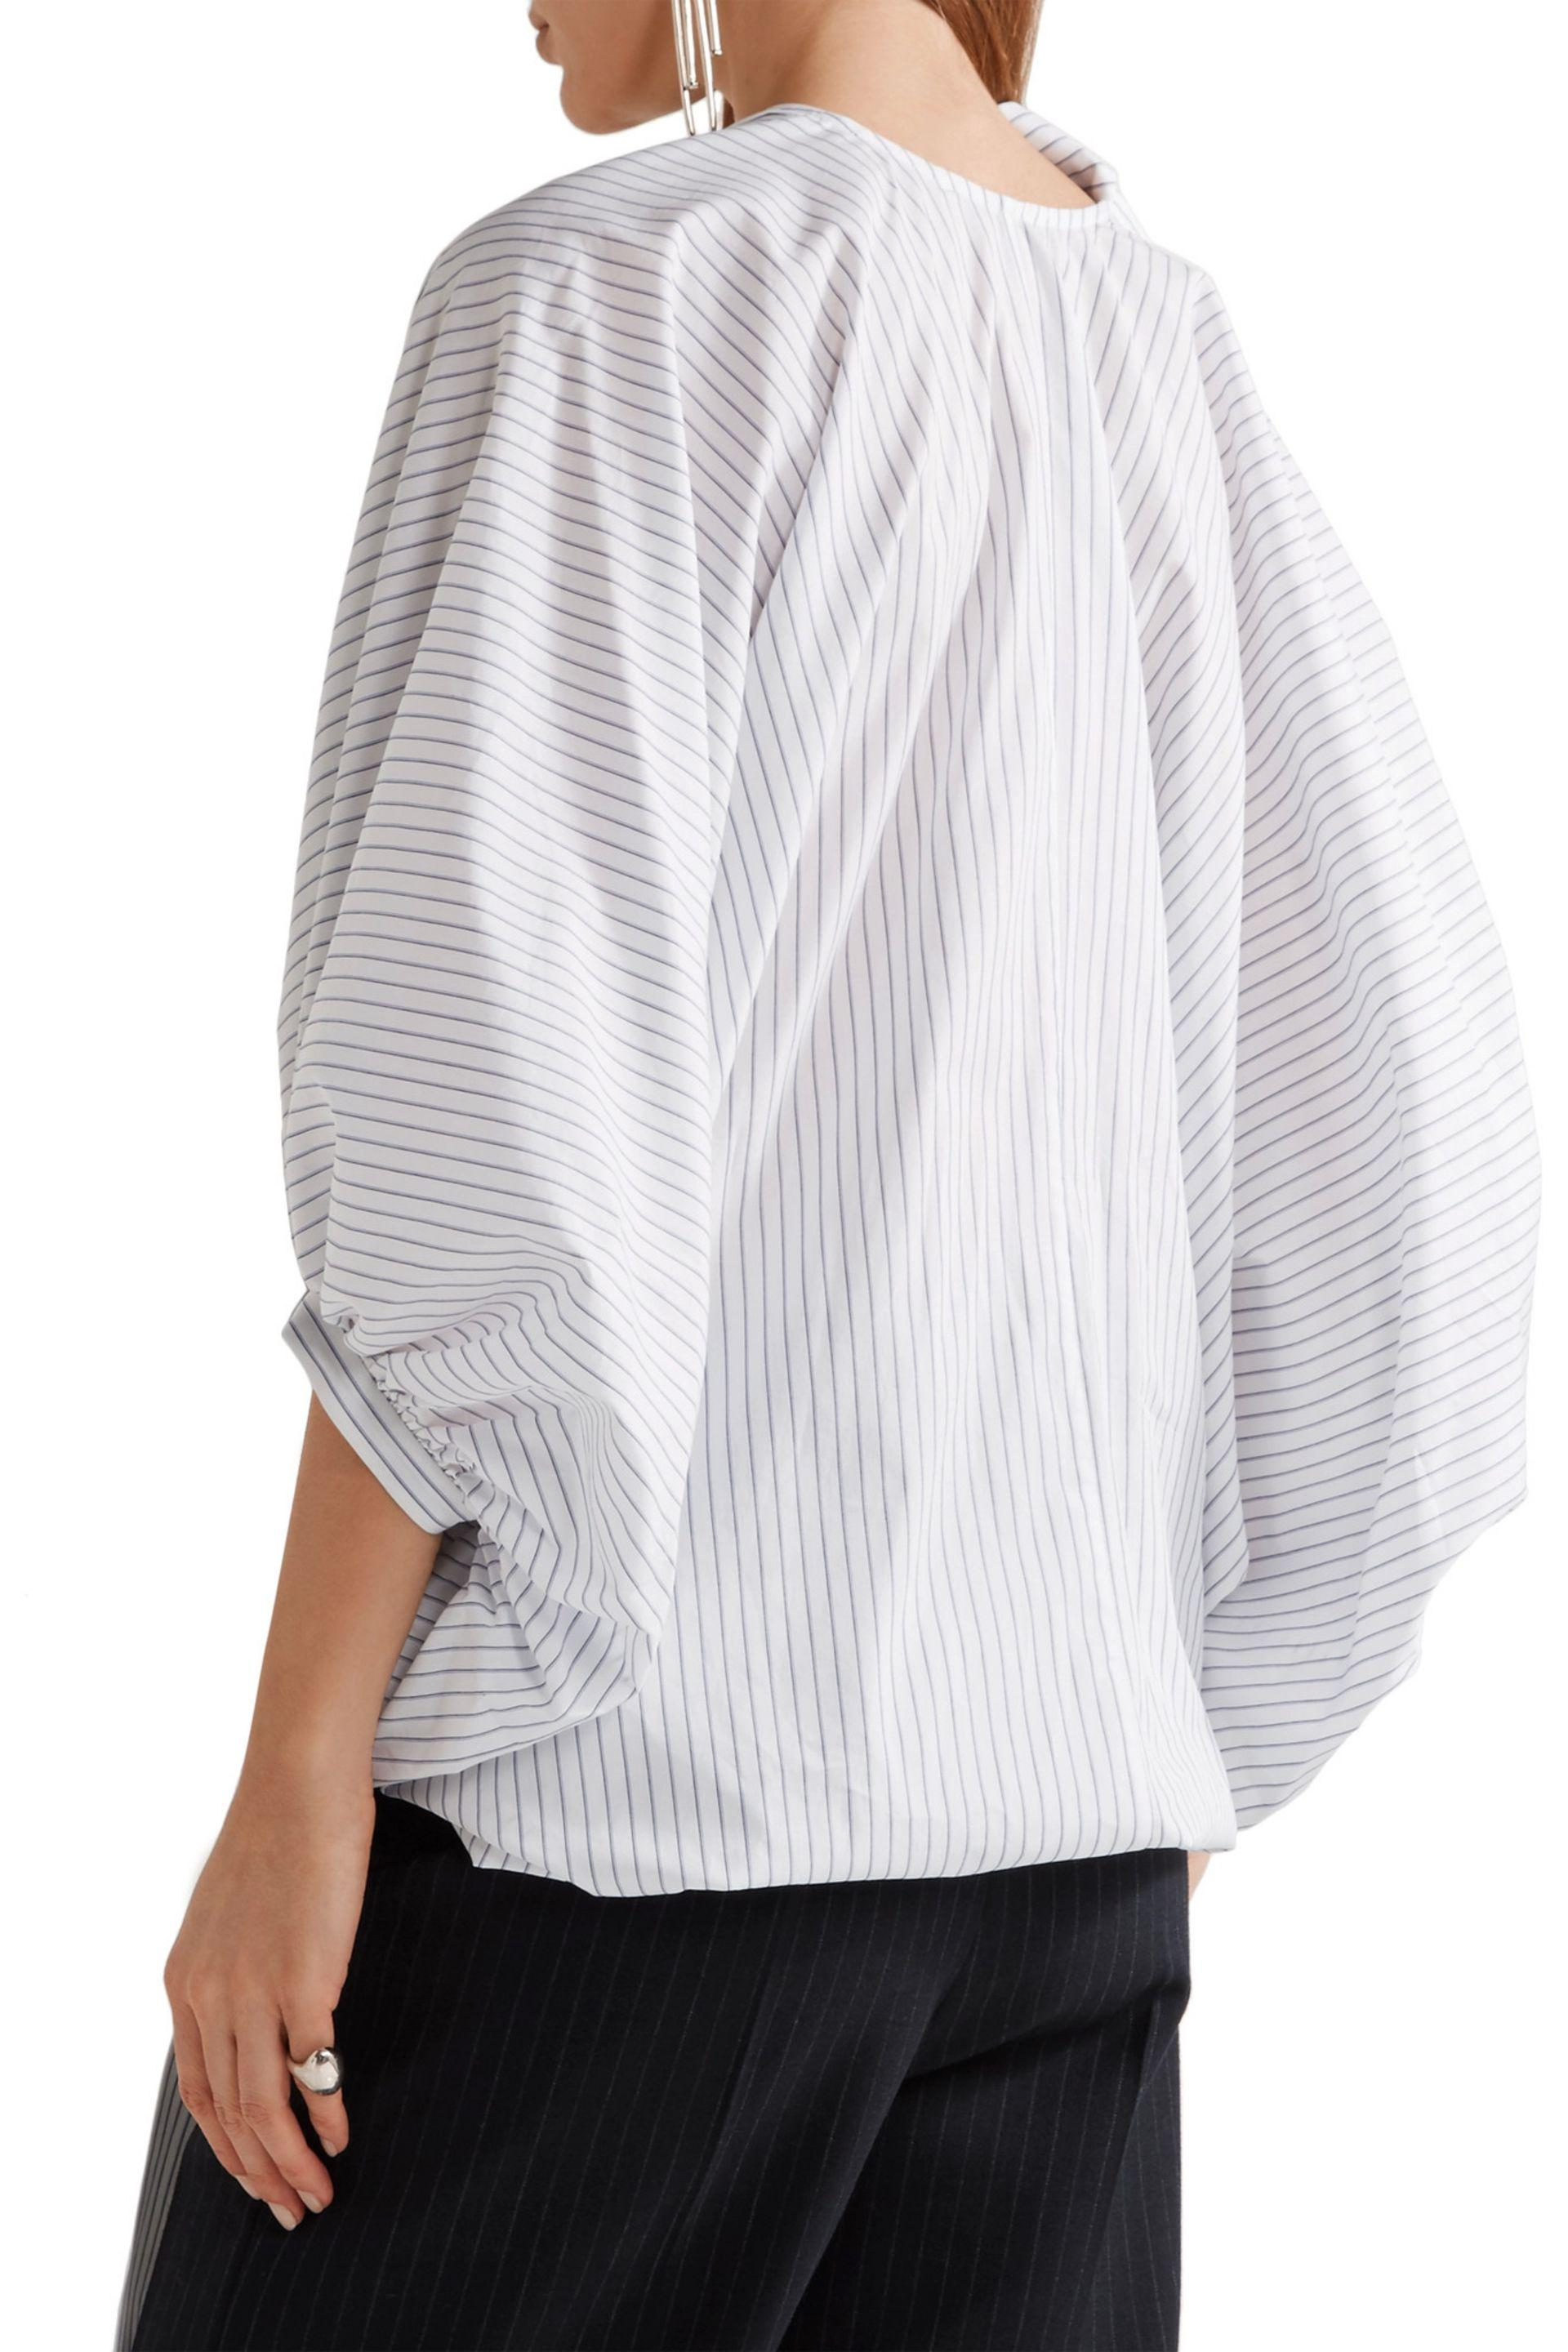 Chalayan striped blouse Cheap Sale Authentic zihctm